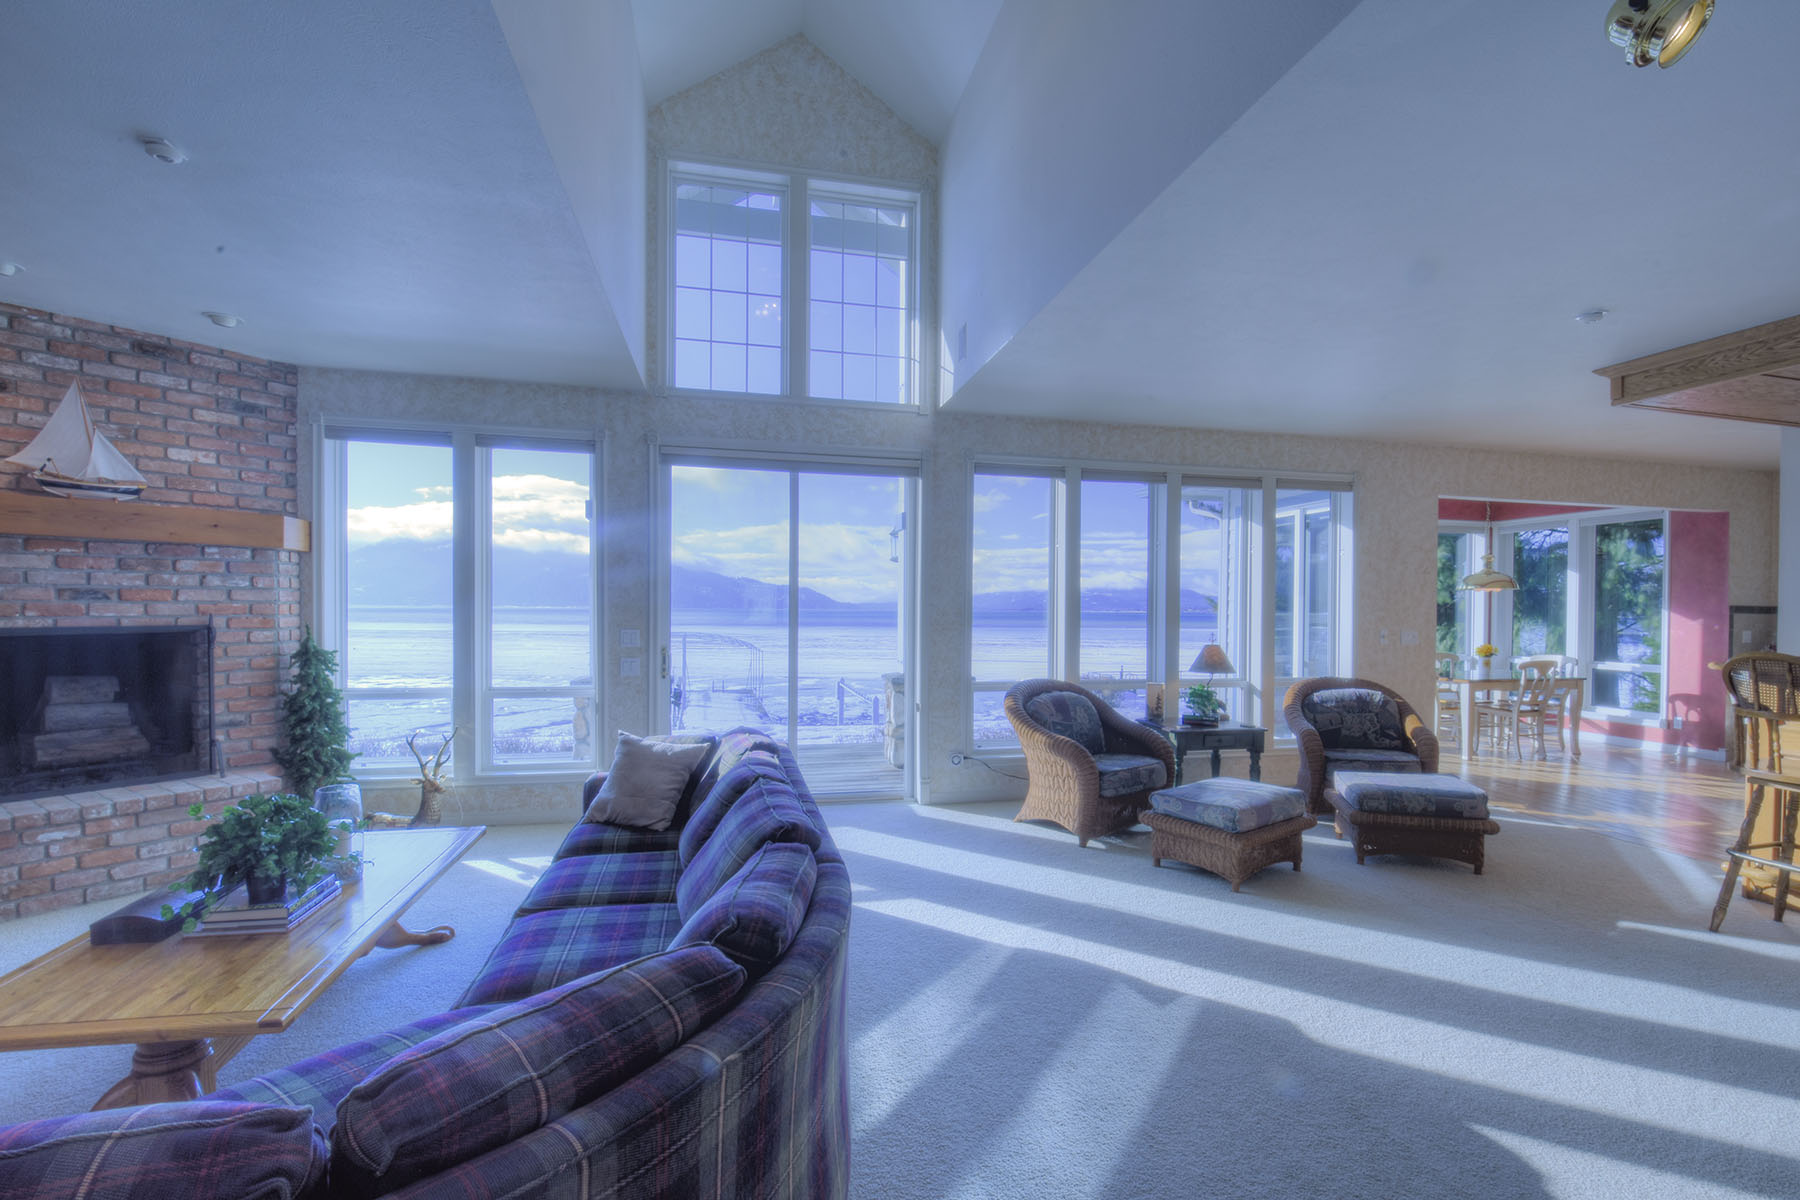 Single Family Home for Sale at Amazing waterfront views 146 Osprey Lane Sandpoint, Idaho 83864 United States